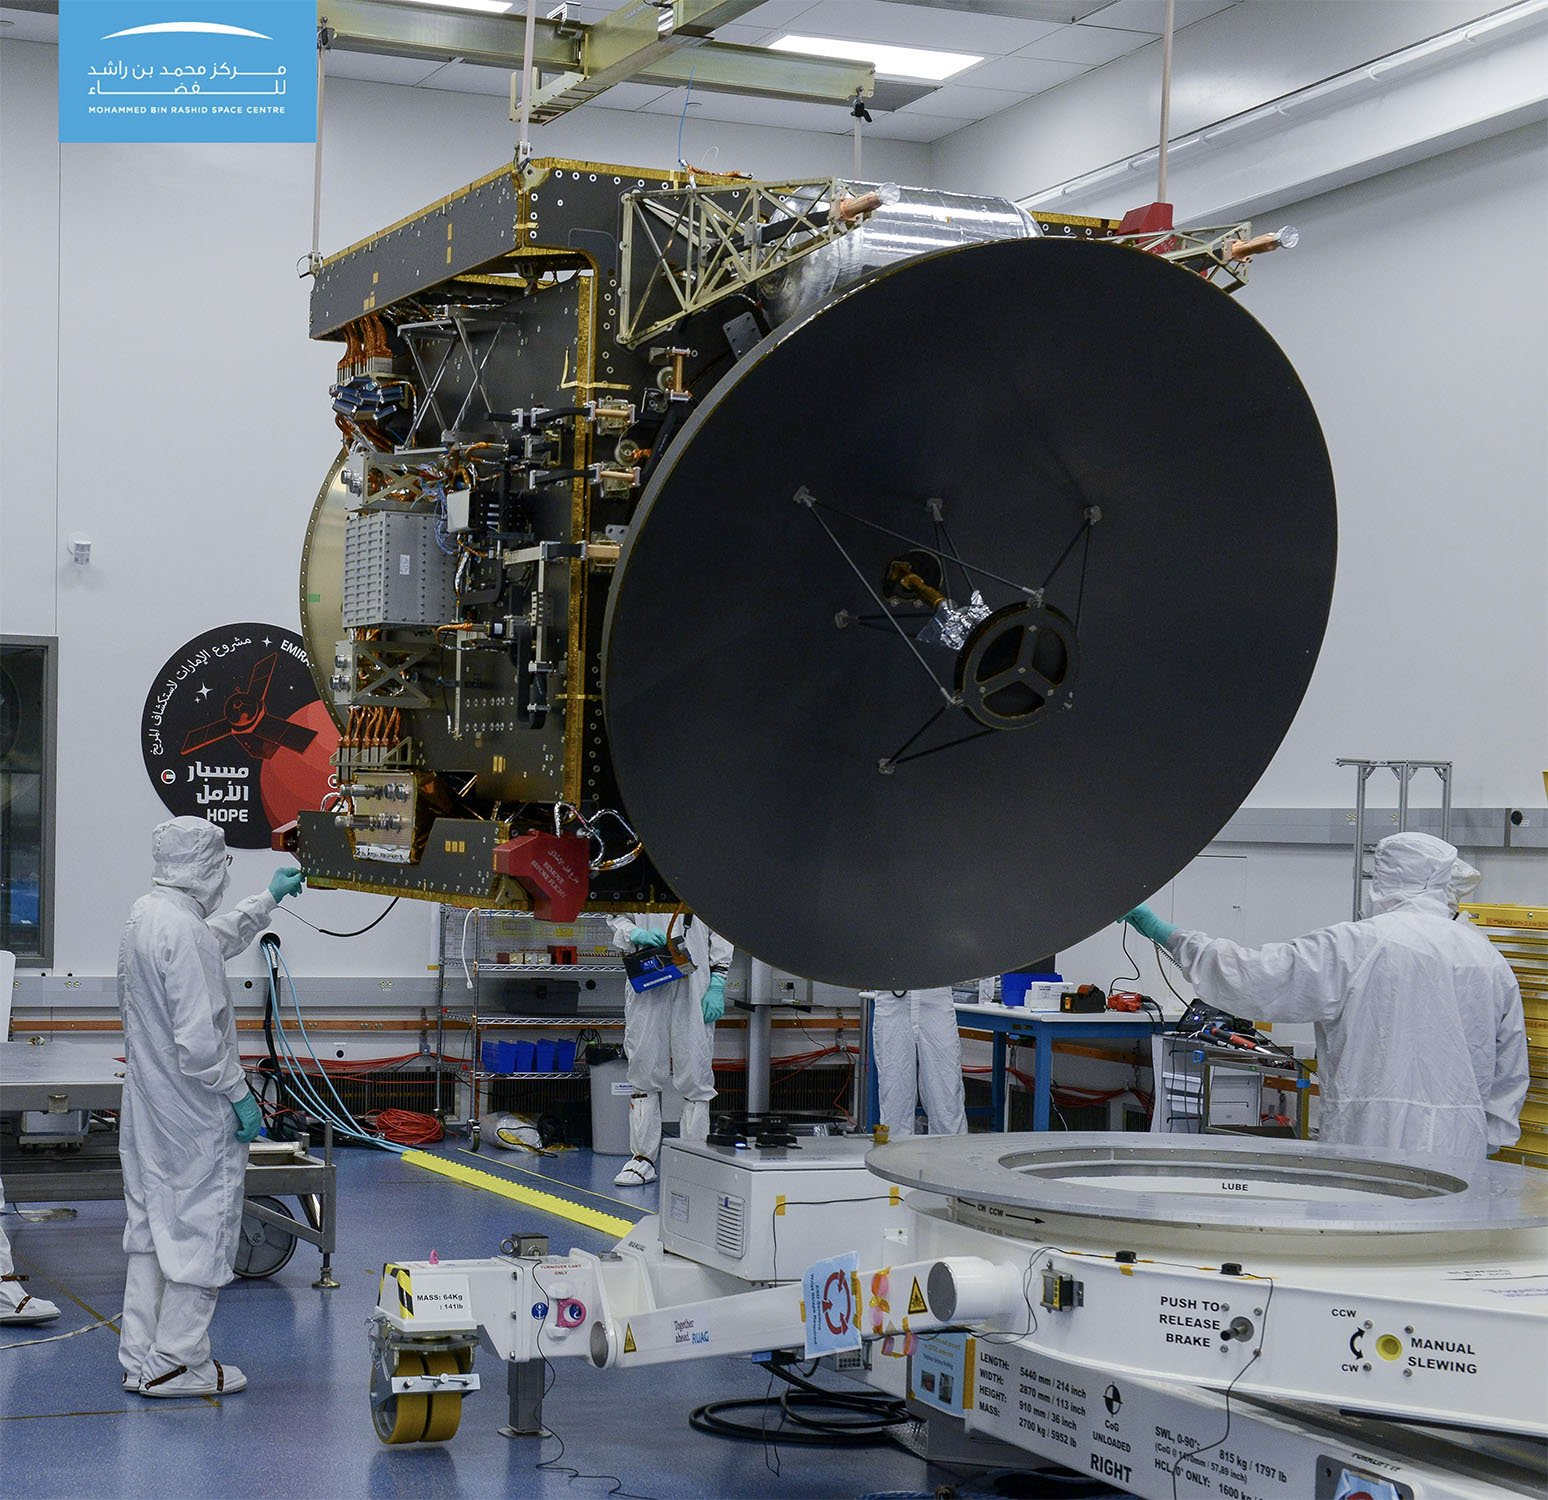 The spacecraft will collect two years' worth of scientific data, or 1,000GB, with an optional two-year extension that would take the mission into 2025. Photo Courtesy: Mohammed bin Rashid Space Centre